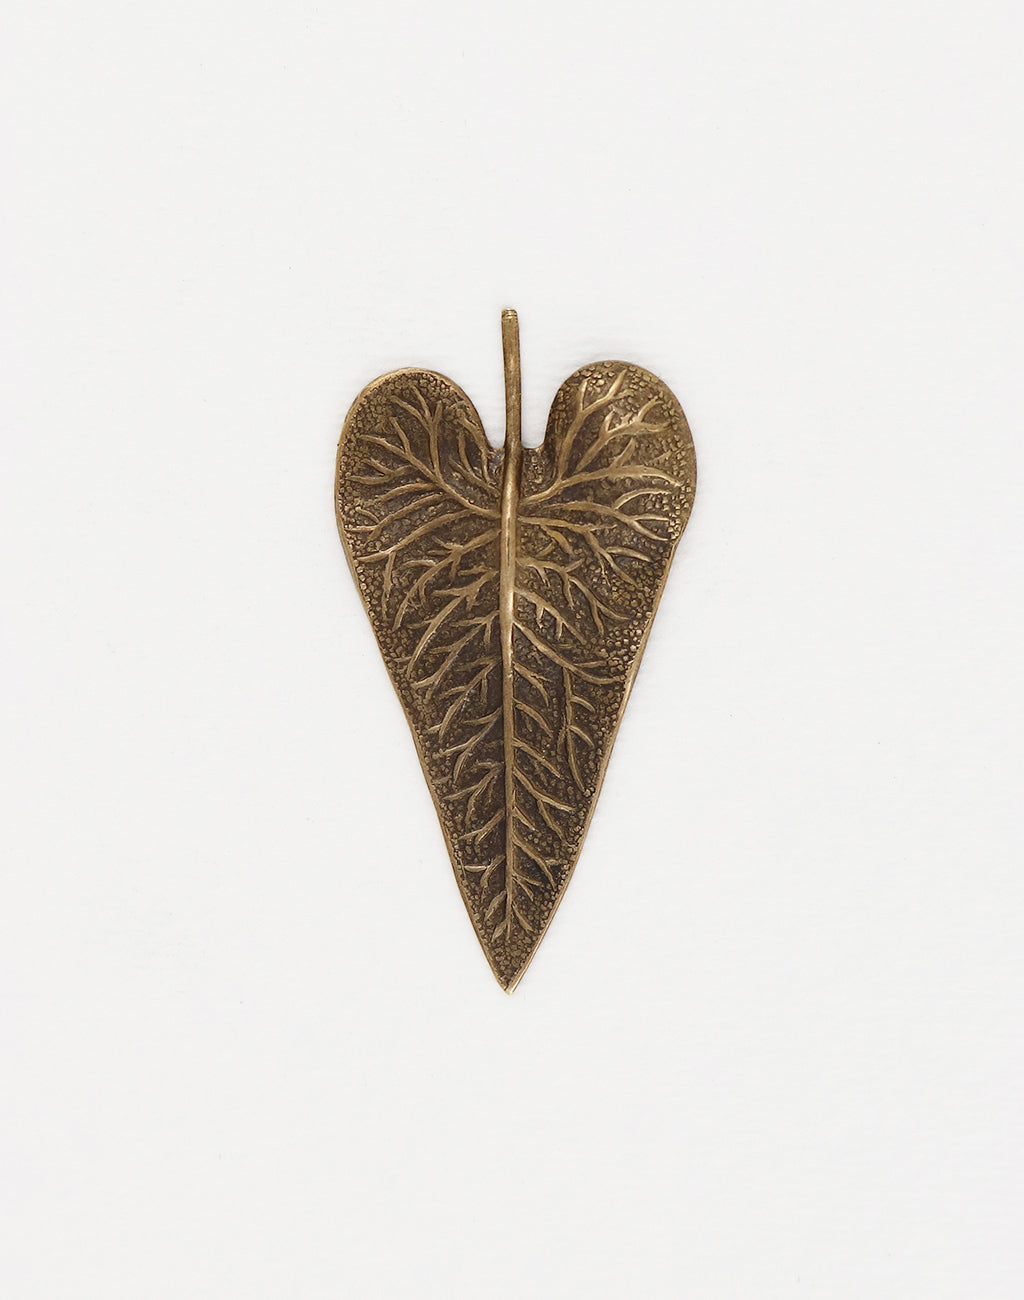 Wildwood Leaf, 50x25mm, (1pc)